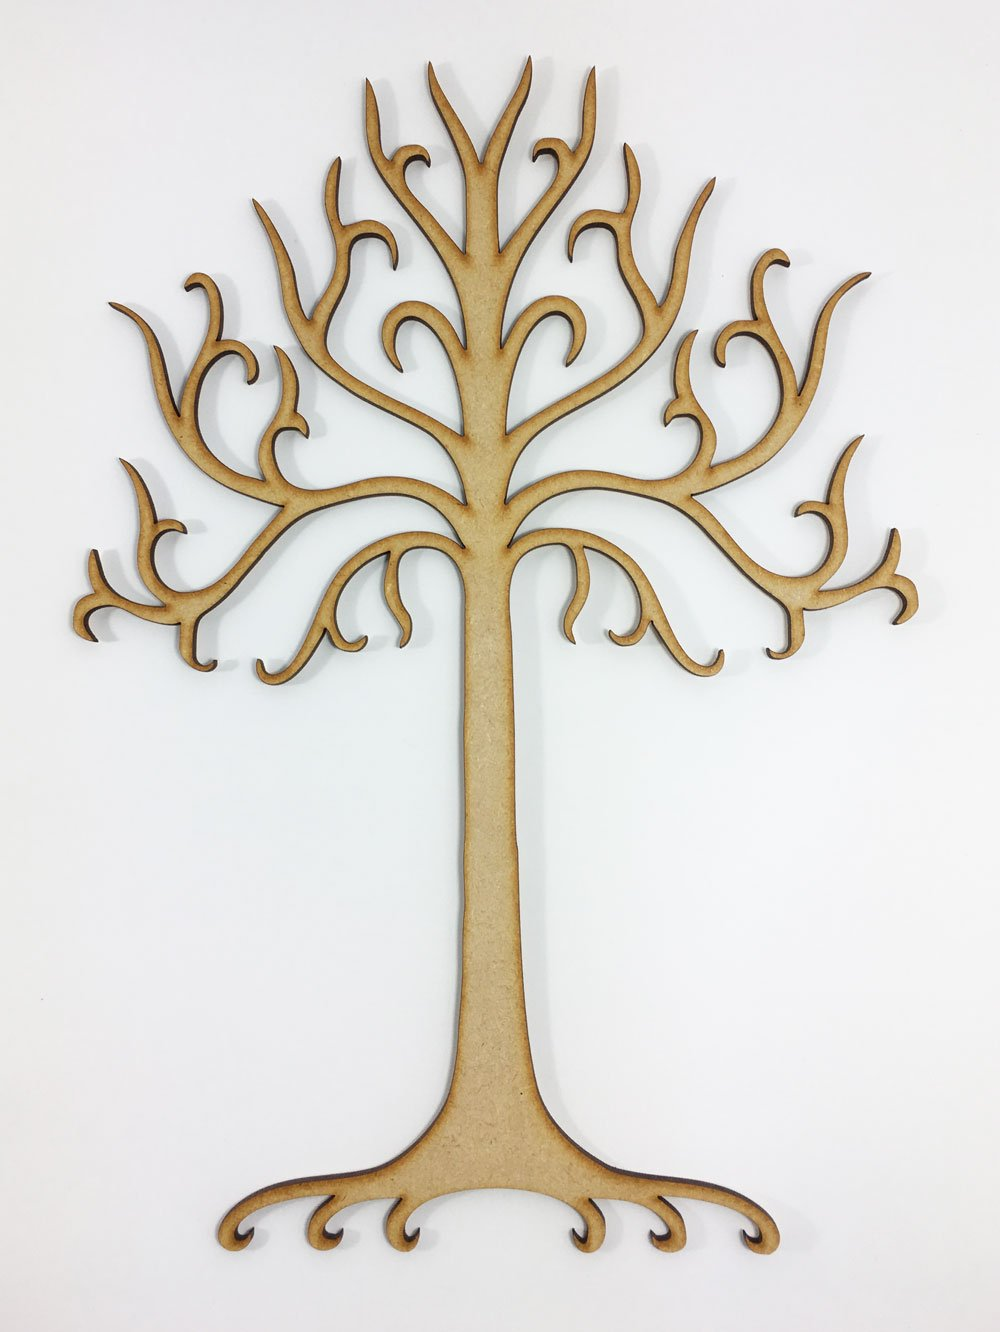 Lotr lord of the rings white tree of gondor wall art stickers large laser cut tree of gondor lord of the rings inspired shape mdf craft amipublicfo Choice Image